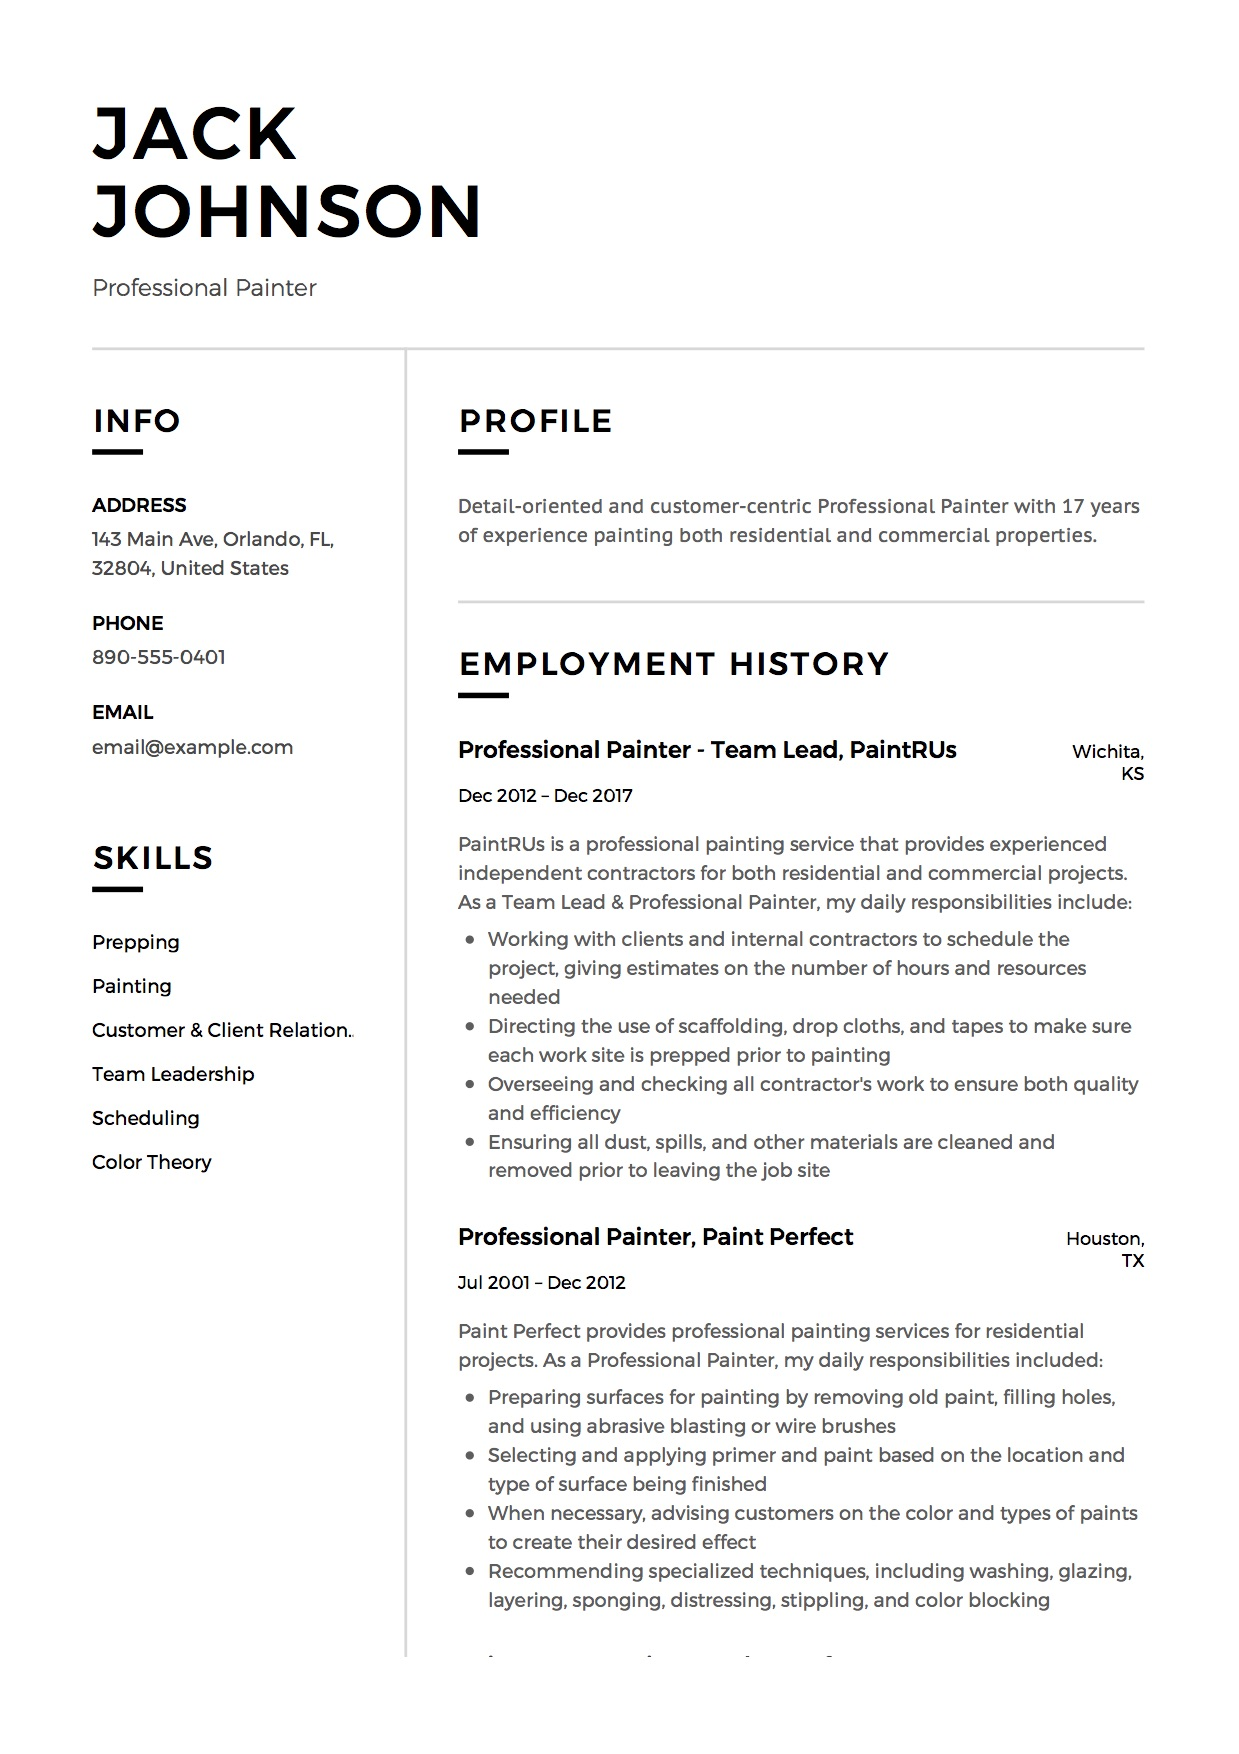 Example Professional Resume Guide Commercial Painter Resume Examples 12 Samples Pdf 2019